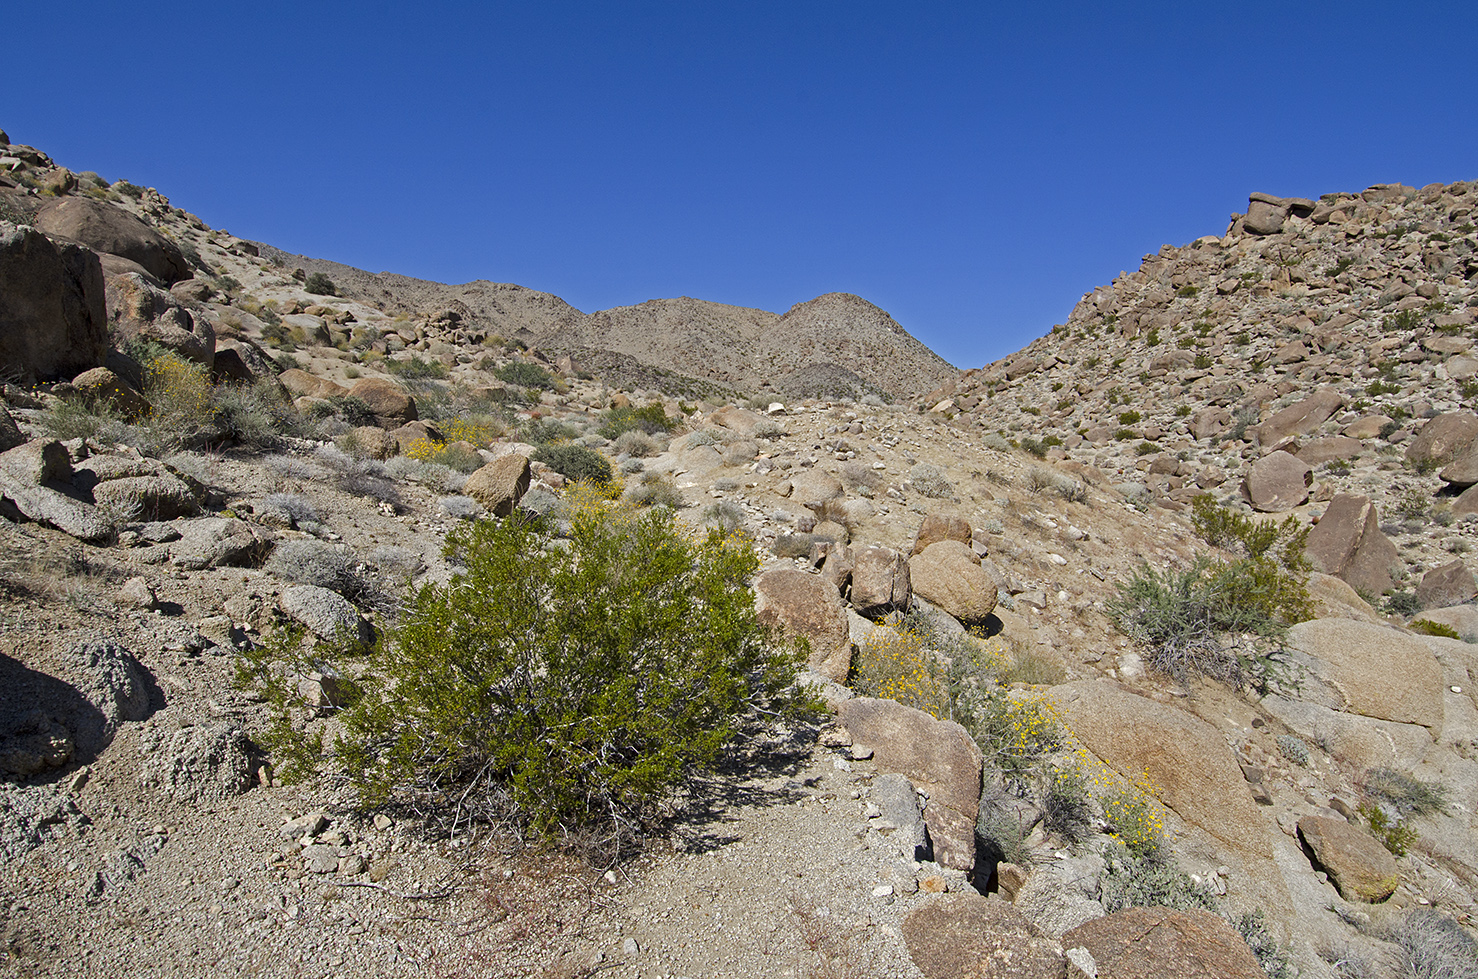 This creosote bush has no problem taking up the whole trail.